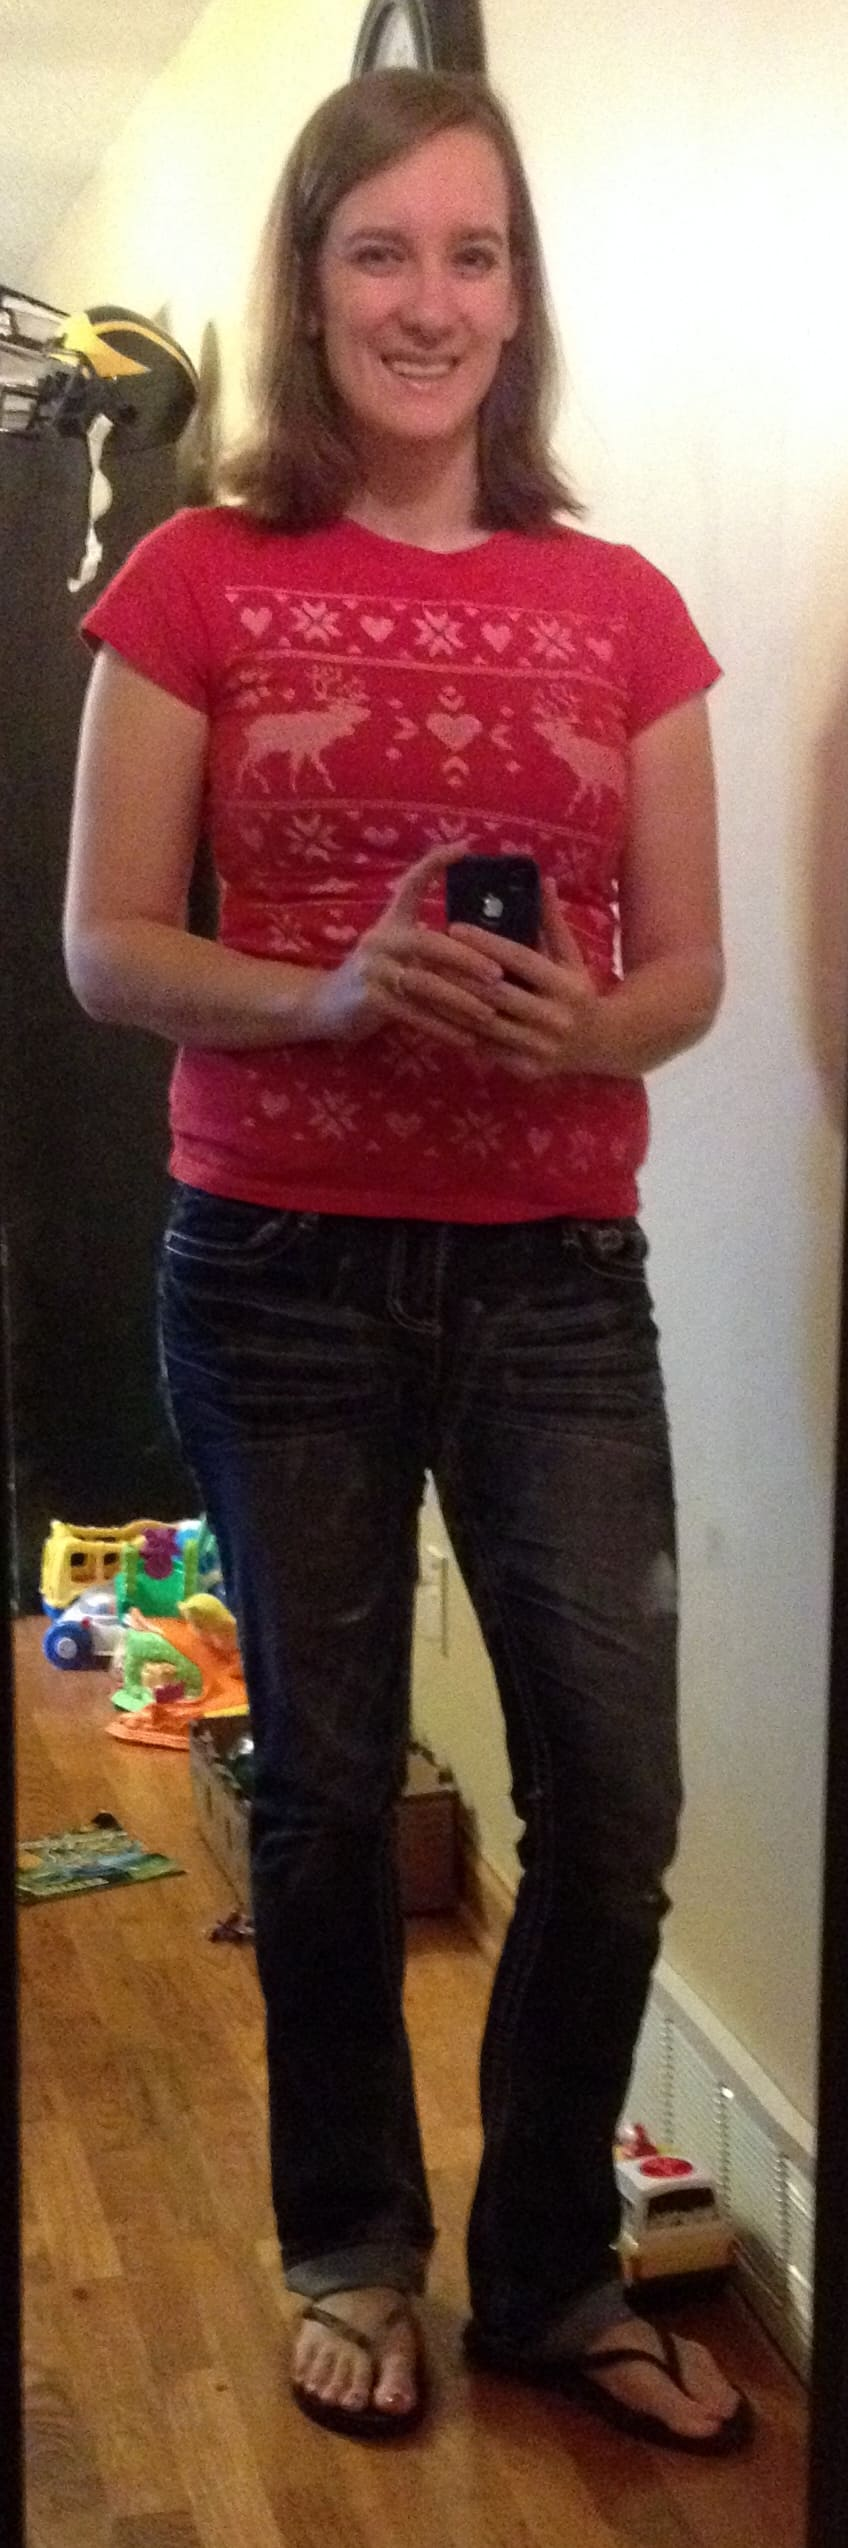 red Christmas-y tshirt, jeans, black flip flops